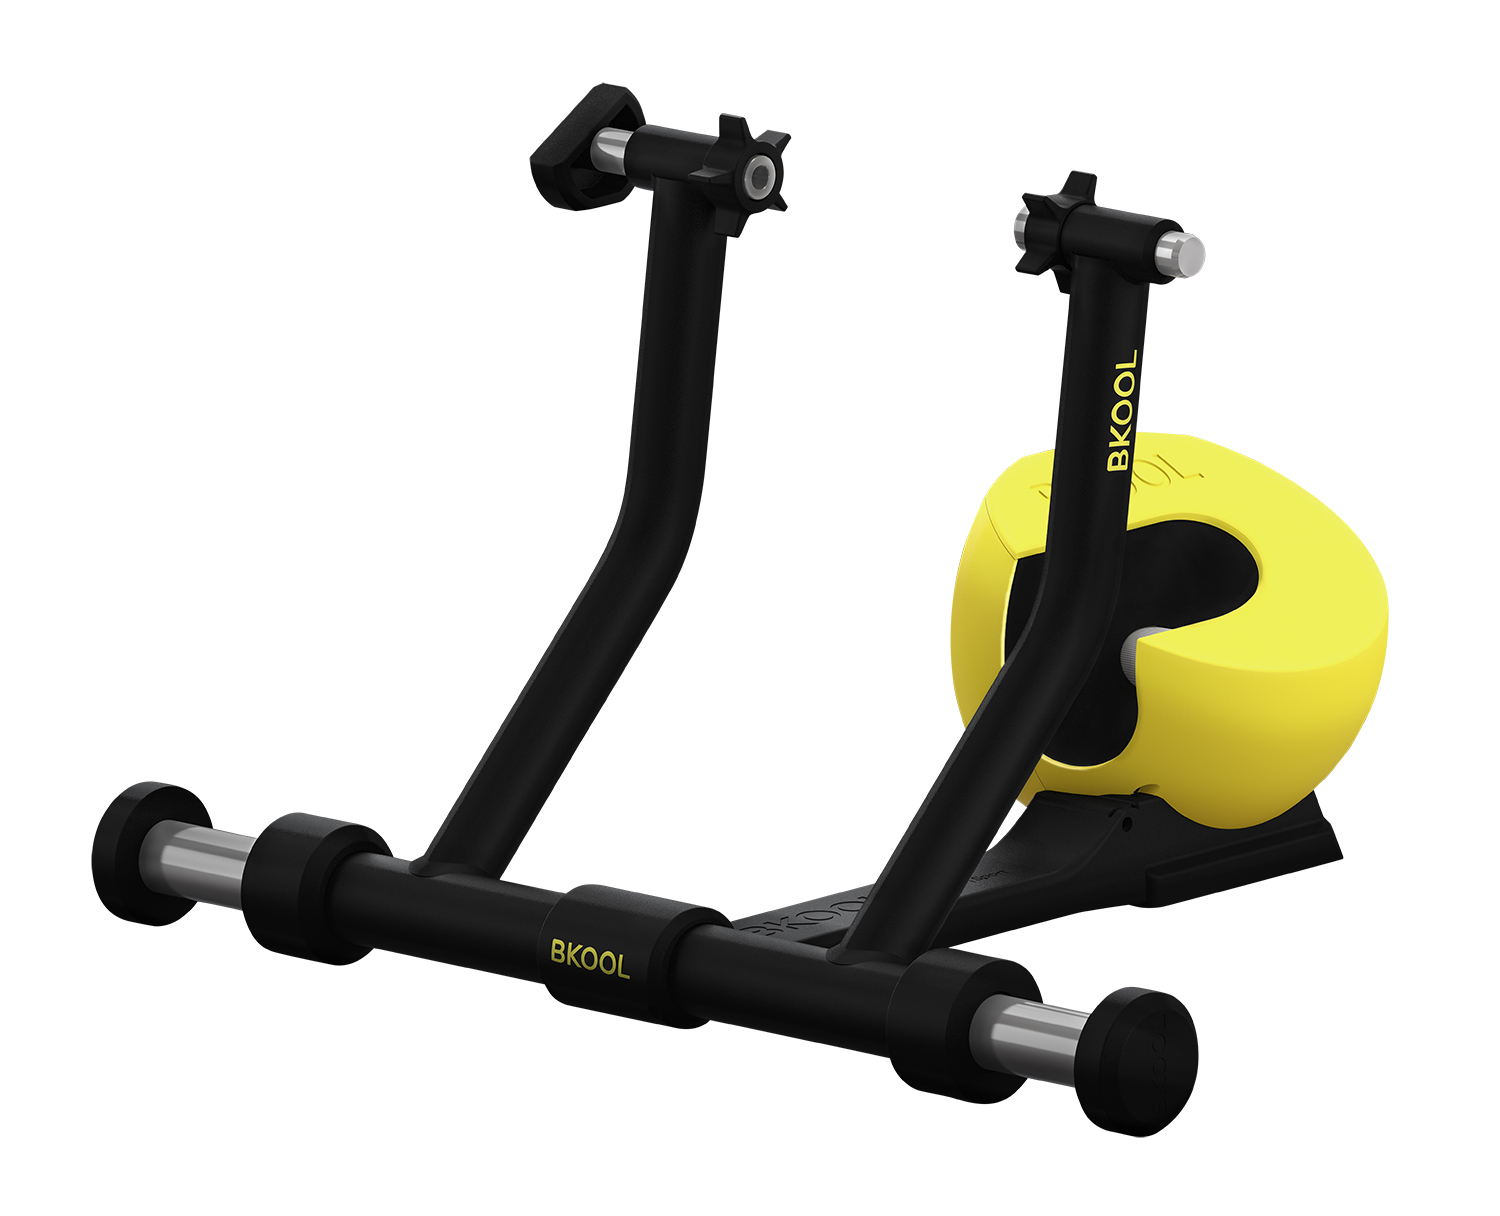 Bkool Smart pro 2 hometrainer